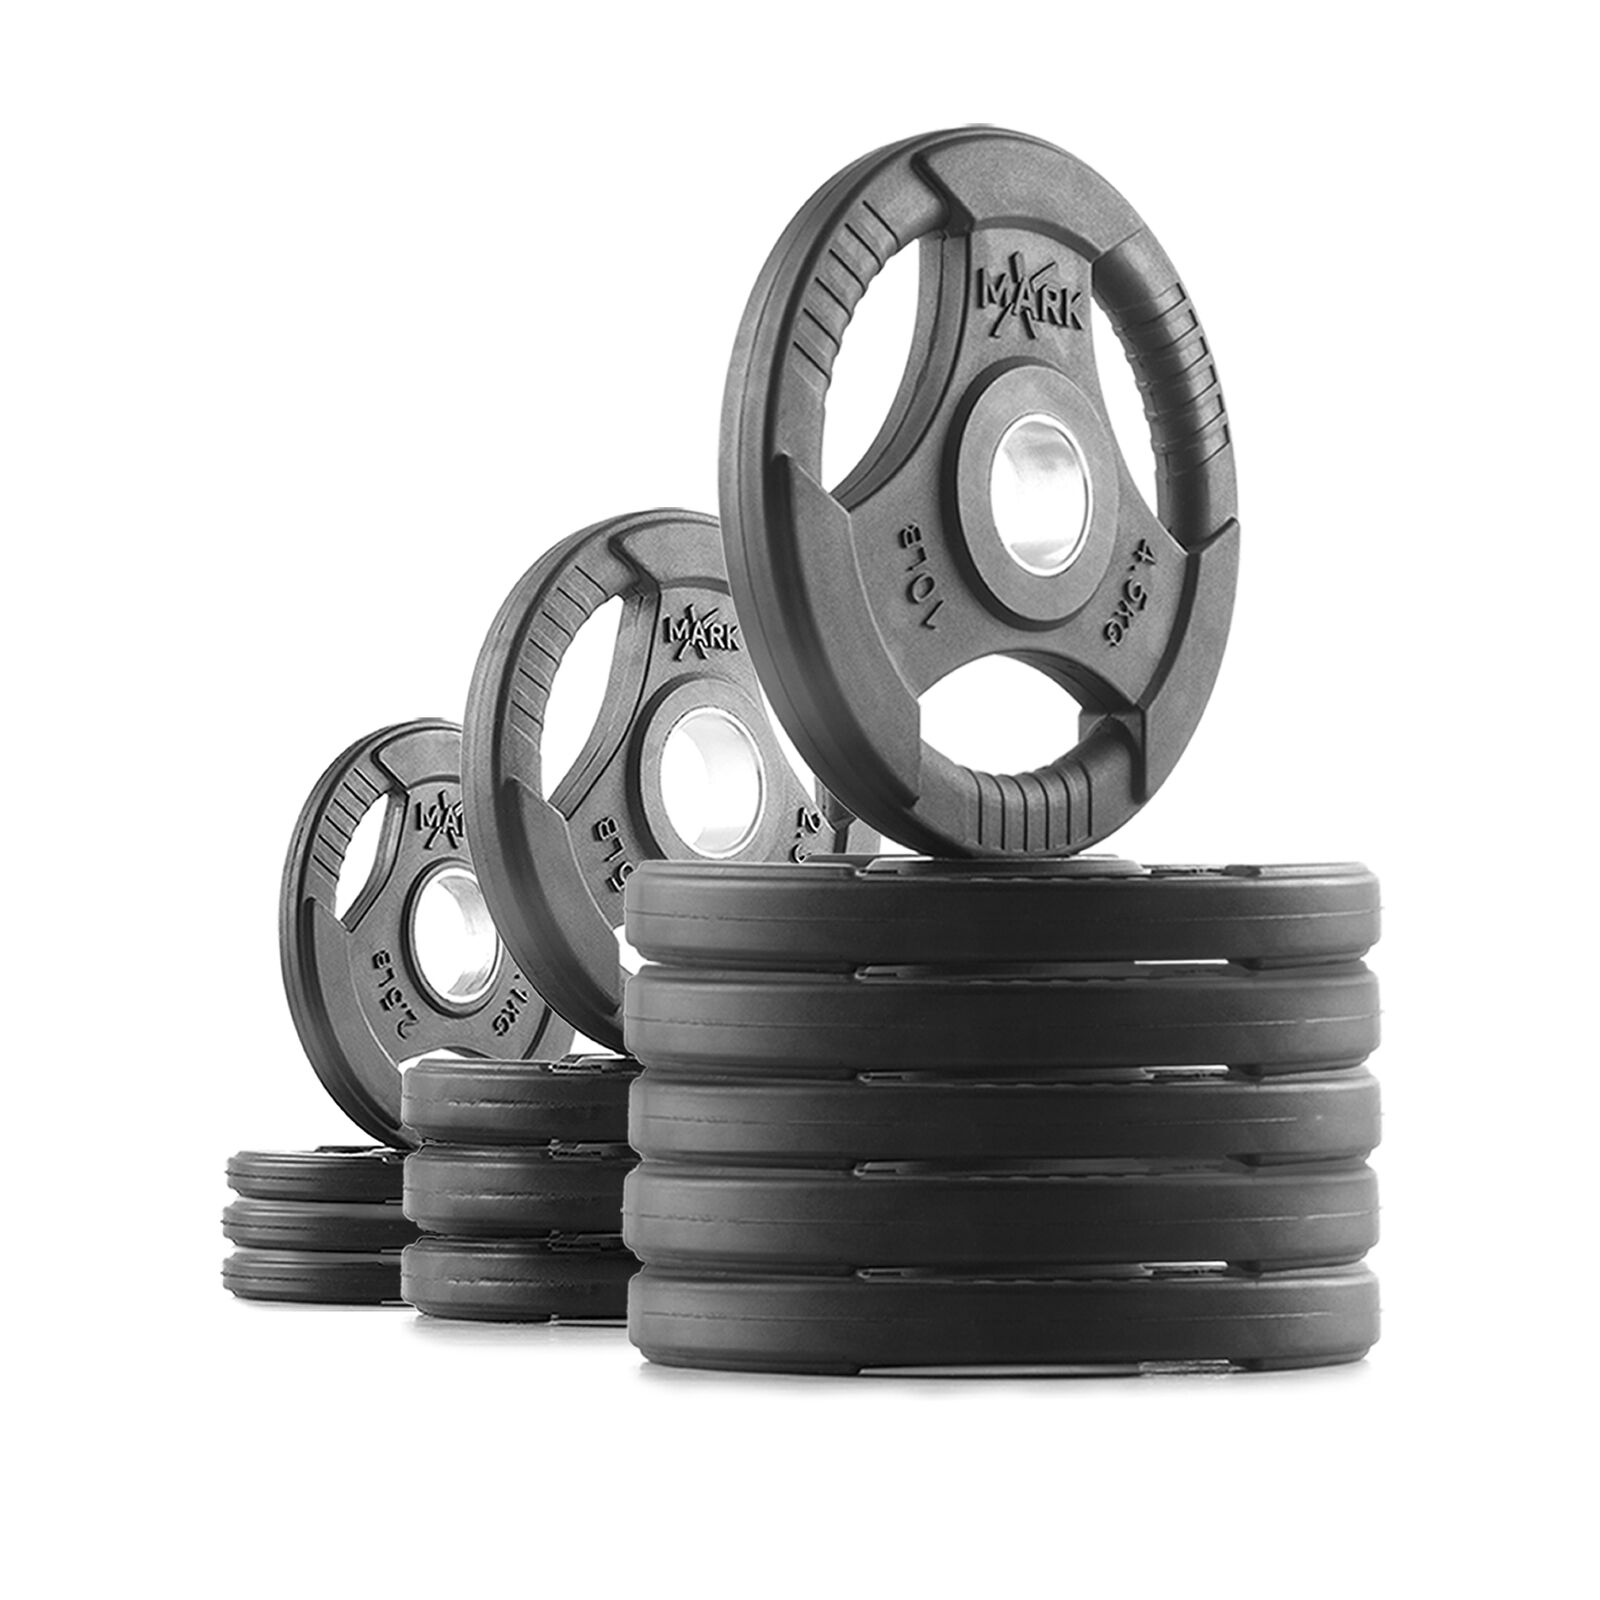 XMark Rubber Coated Tri-Grip Olympic Weight Plates XM-3377-BAL-90_90 lb. Set